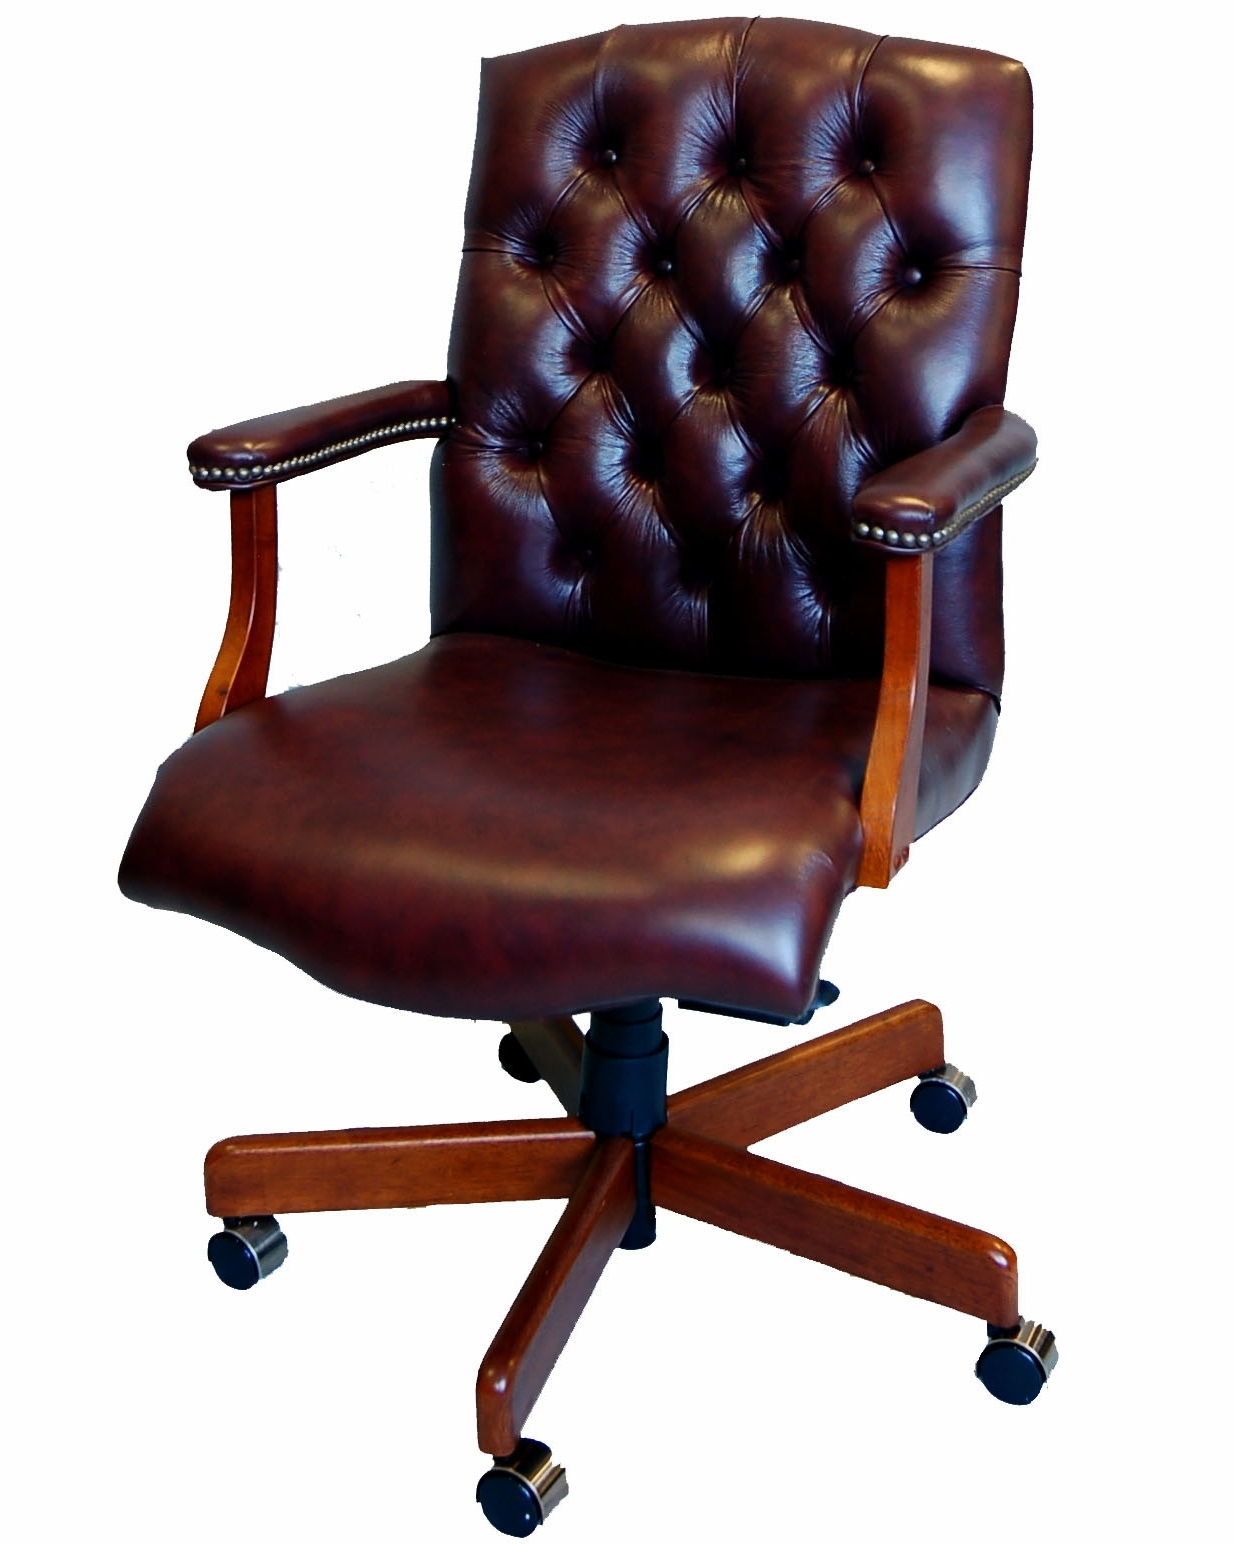 Brown Leather Executive Desk Chair • Desk Chair Pertaining To Newest Leather Executive Office Chairs (View 1 of 20)